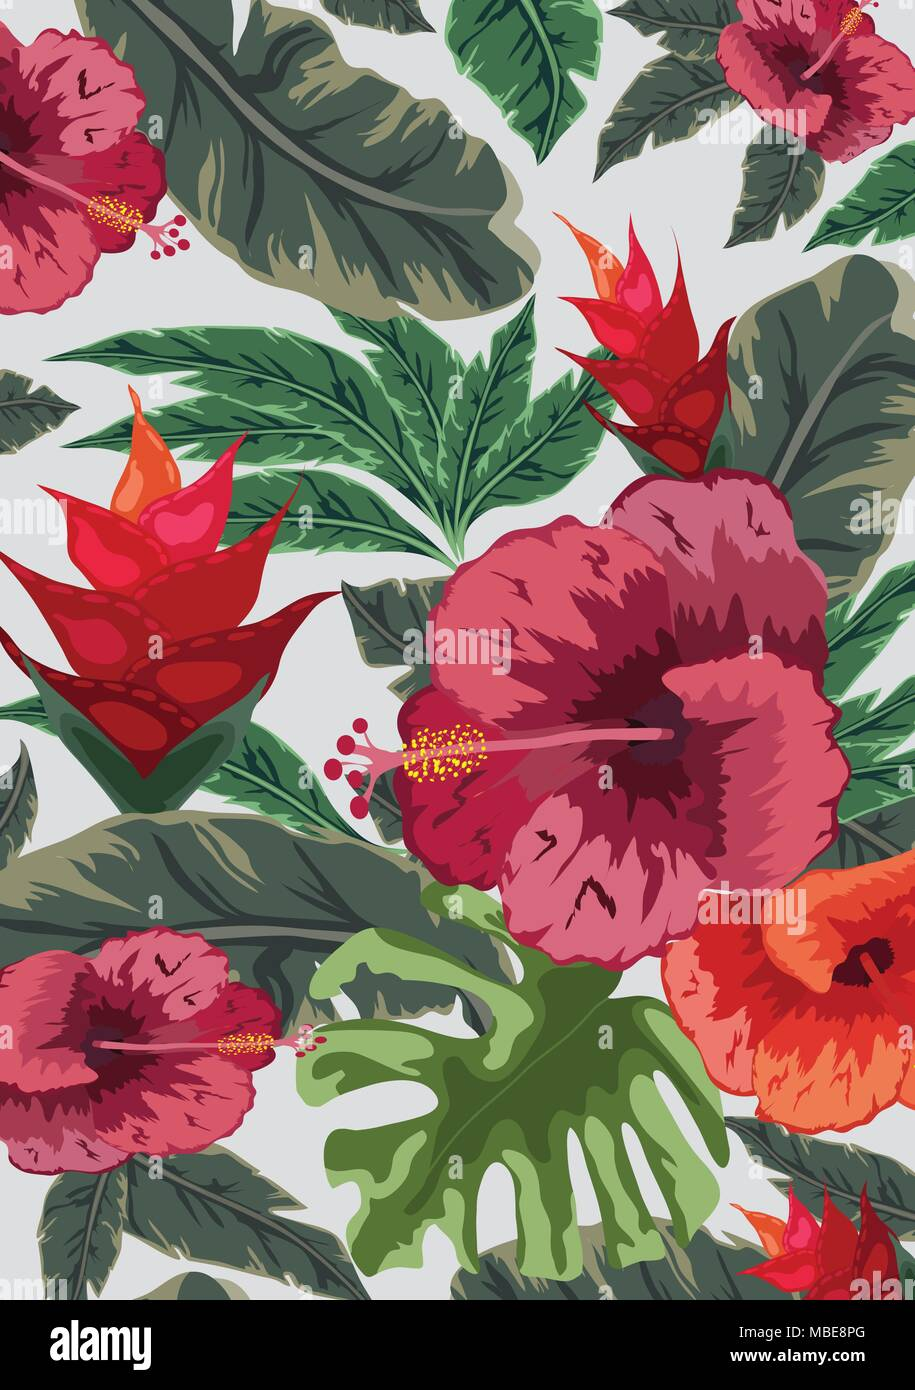 Hand draw tropical flower. Blossom cluster pattern background - Stock Vector